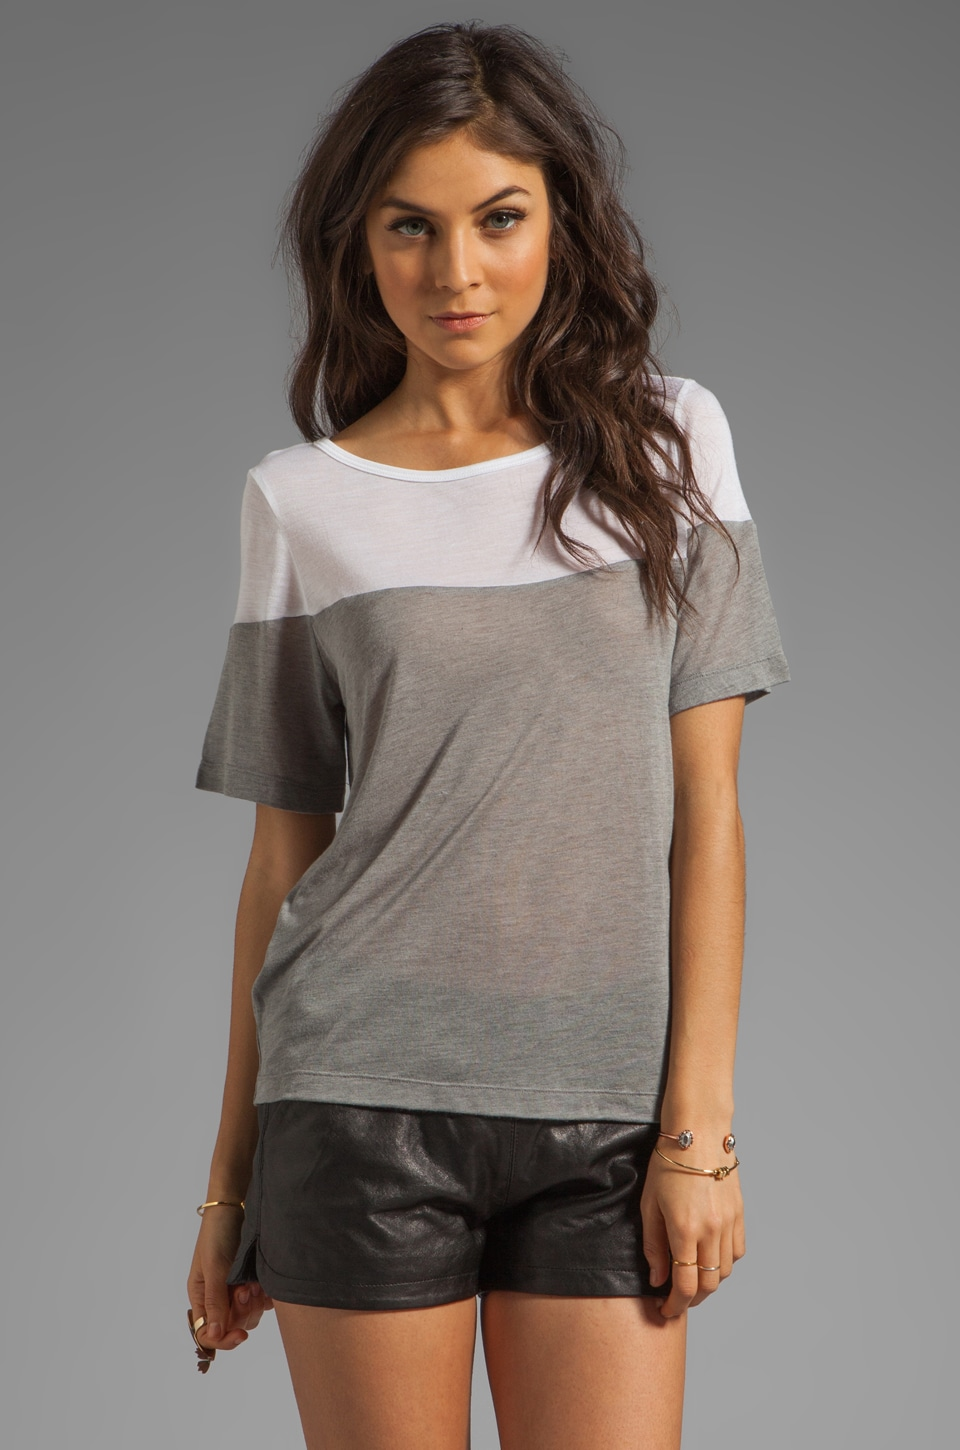 Kain Sheer Jersey Dayton Tee in White/Heather Grey Combo